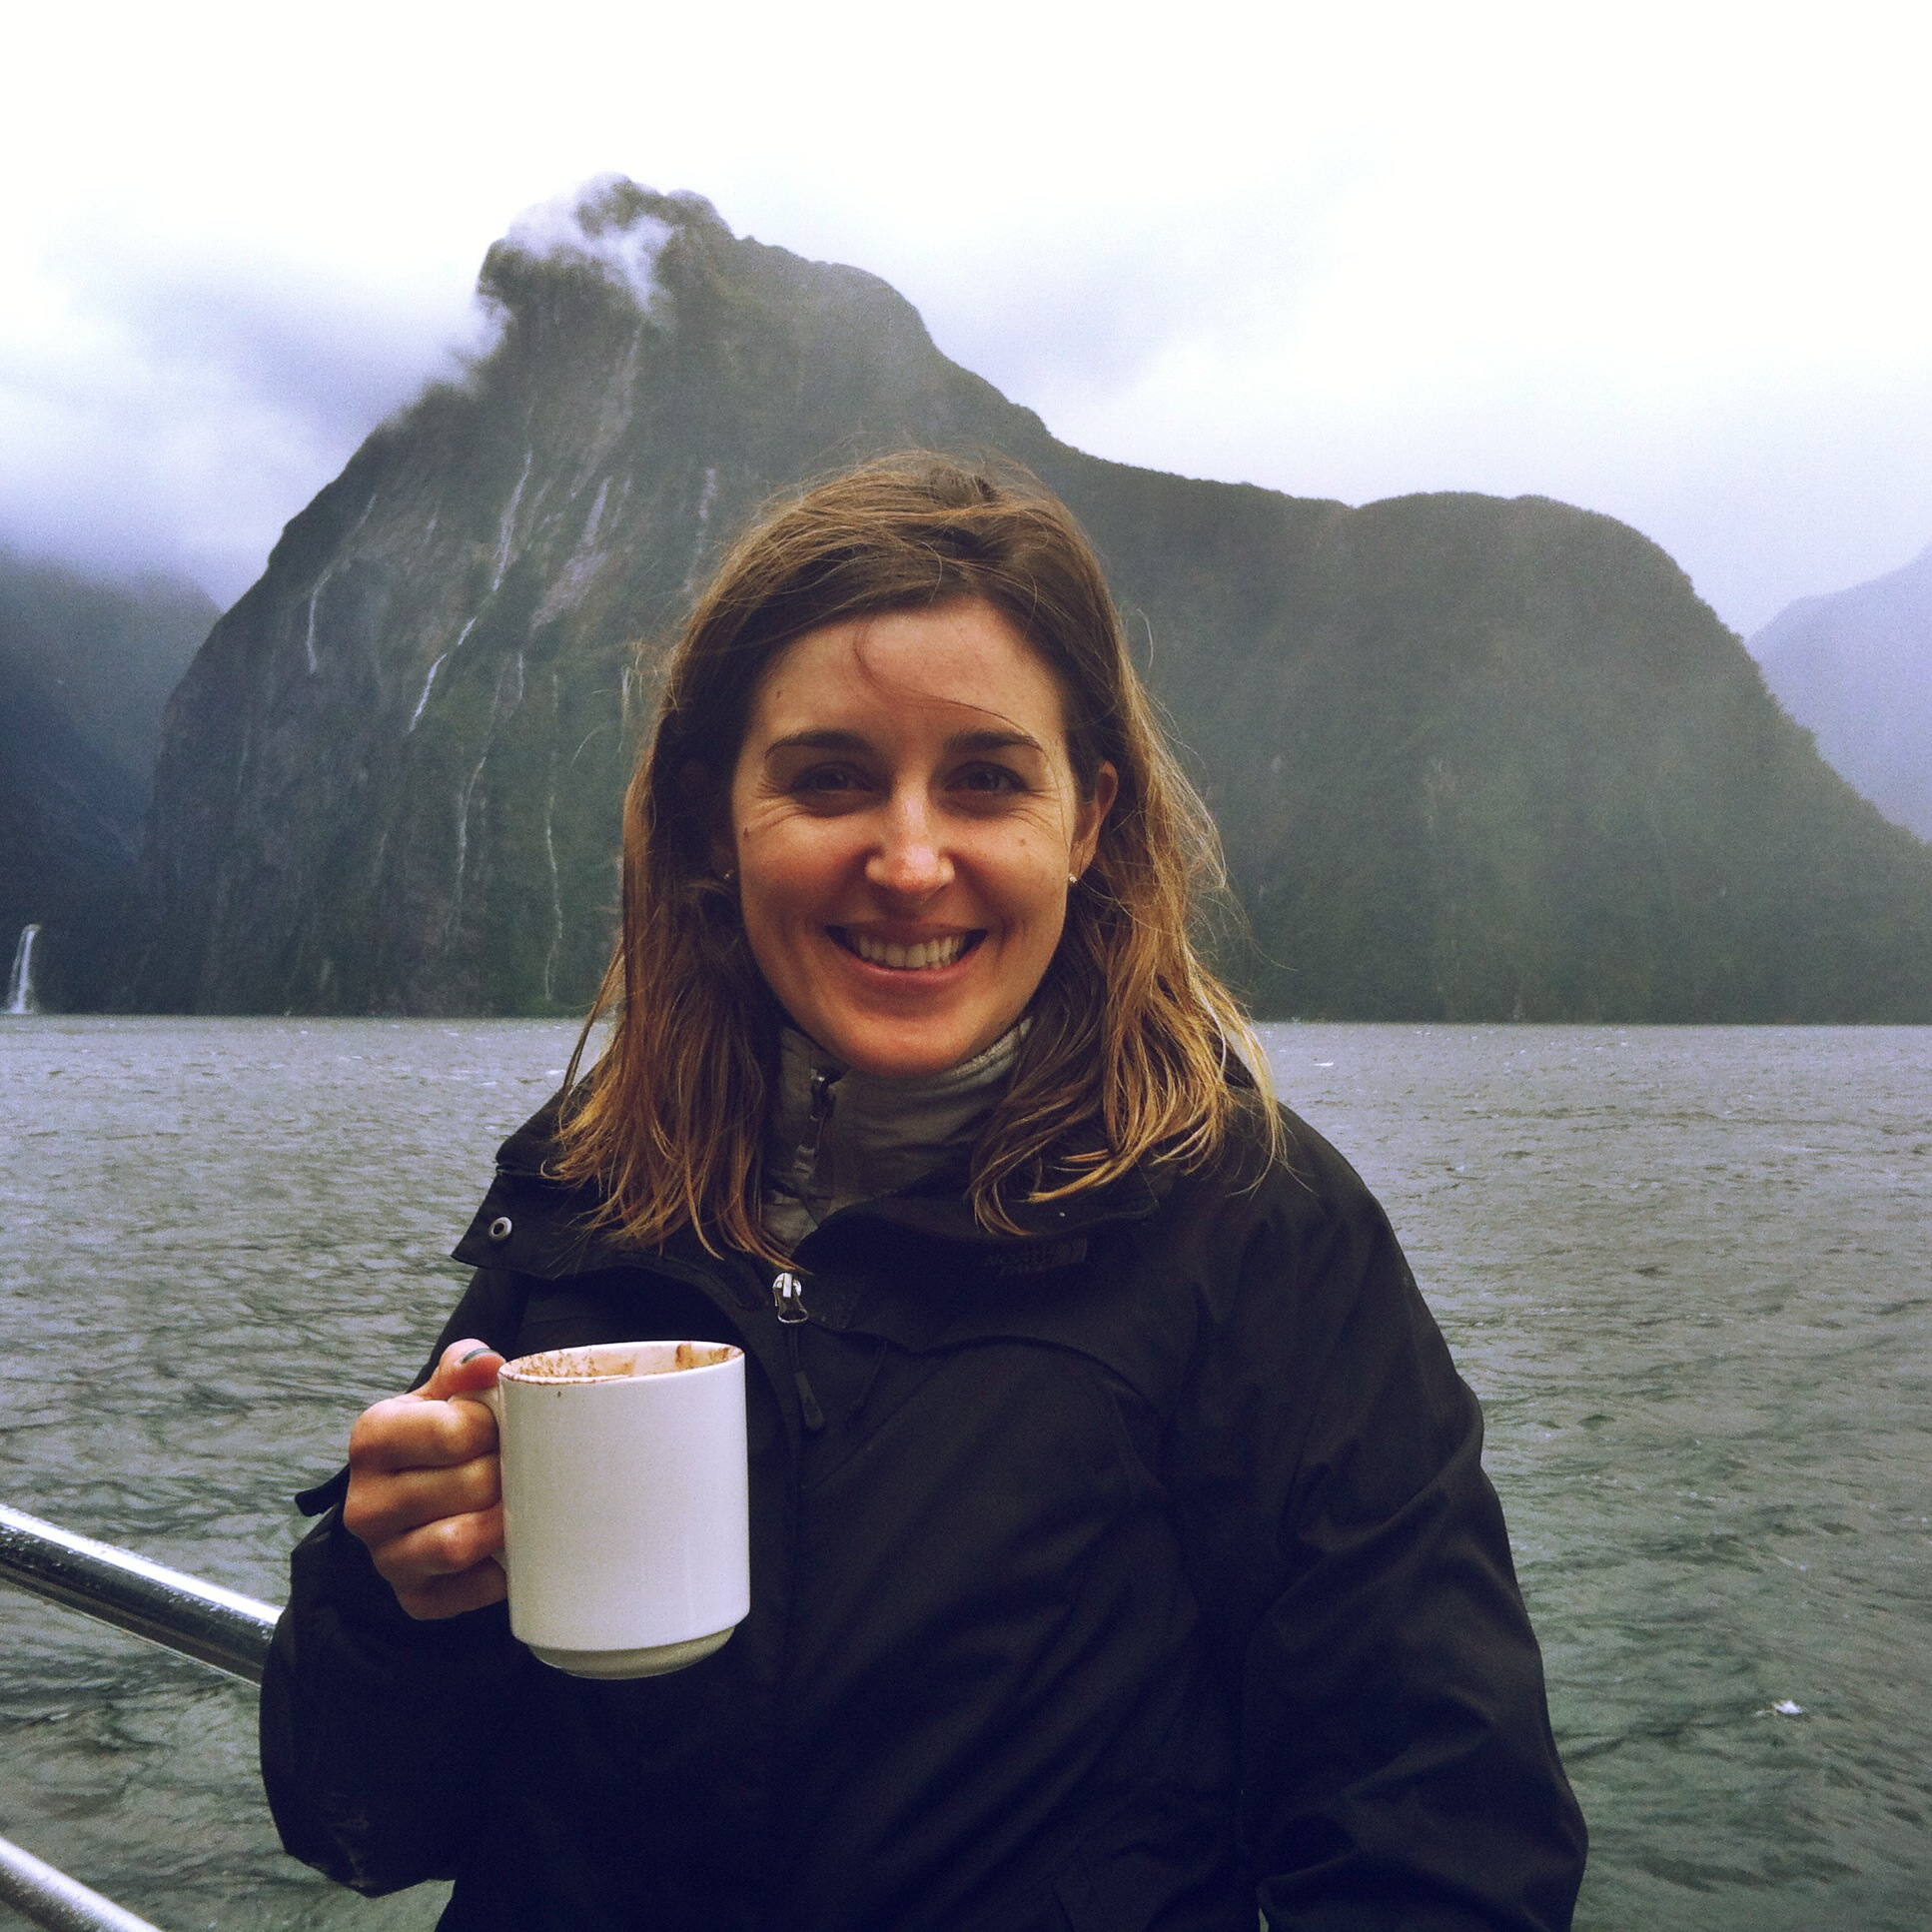 Nothing tastes better than a hot chocolate after kayaking through New Zealand's Fjordland, ya know?